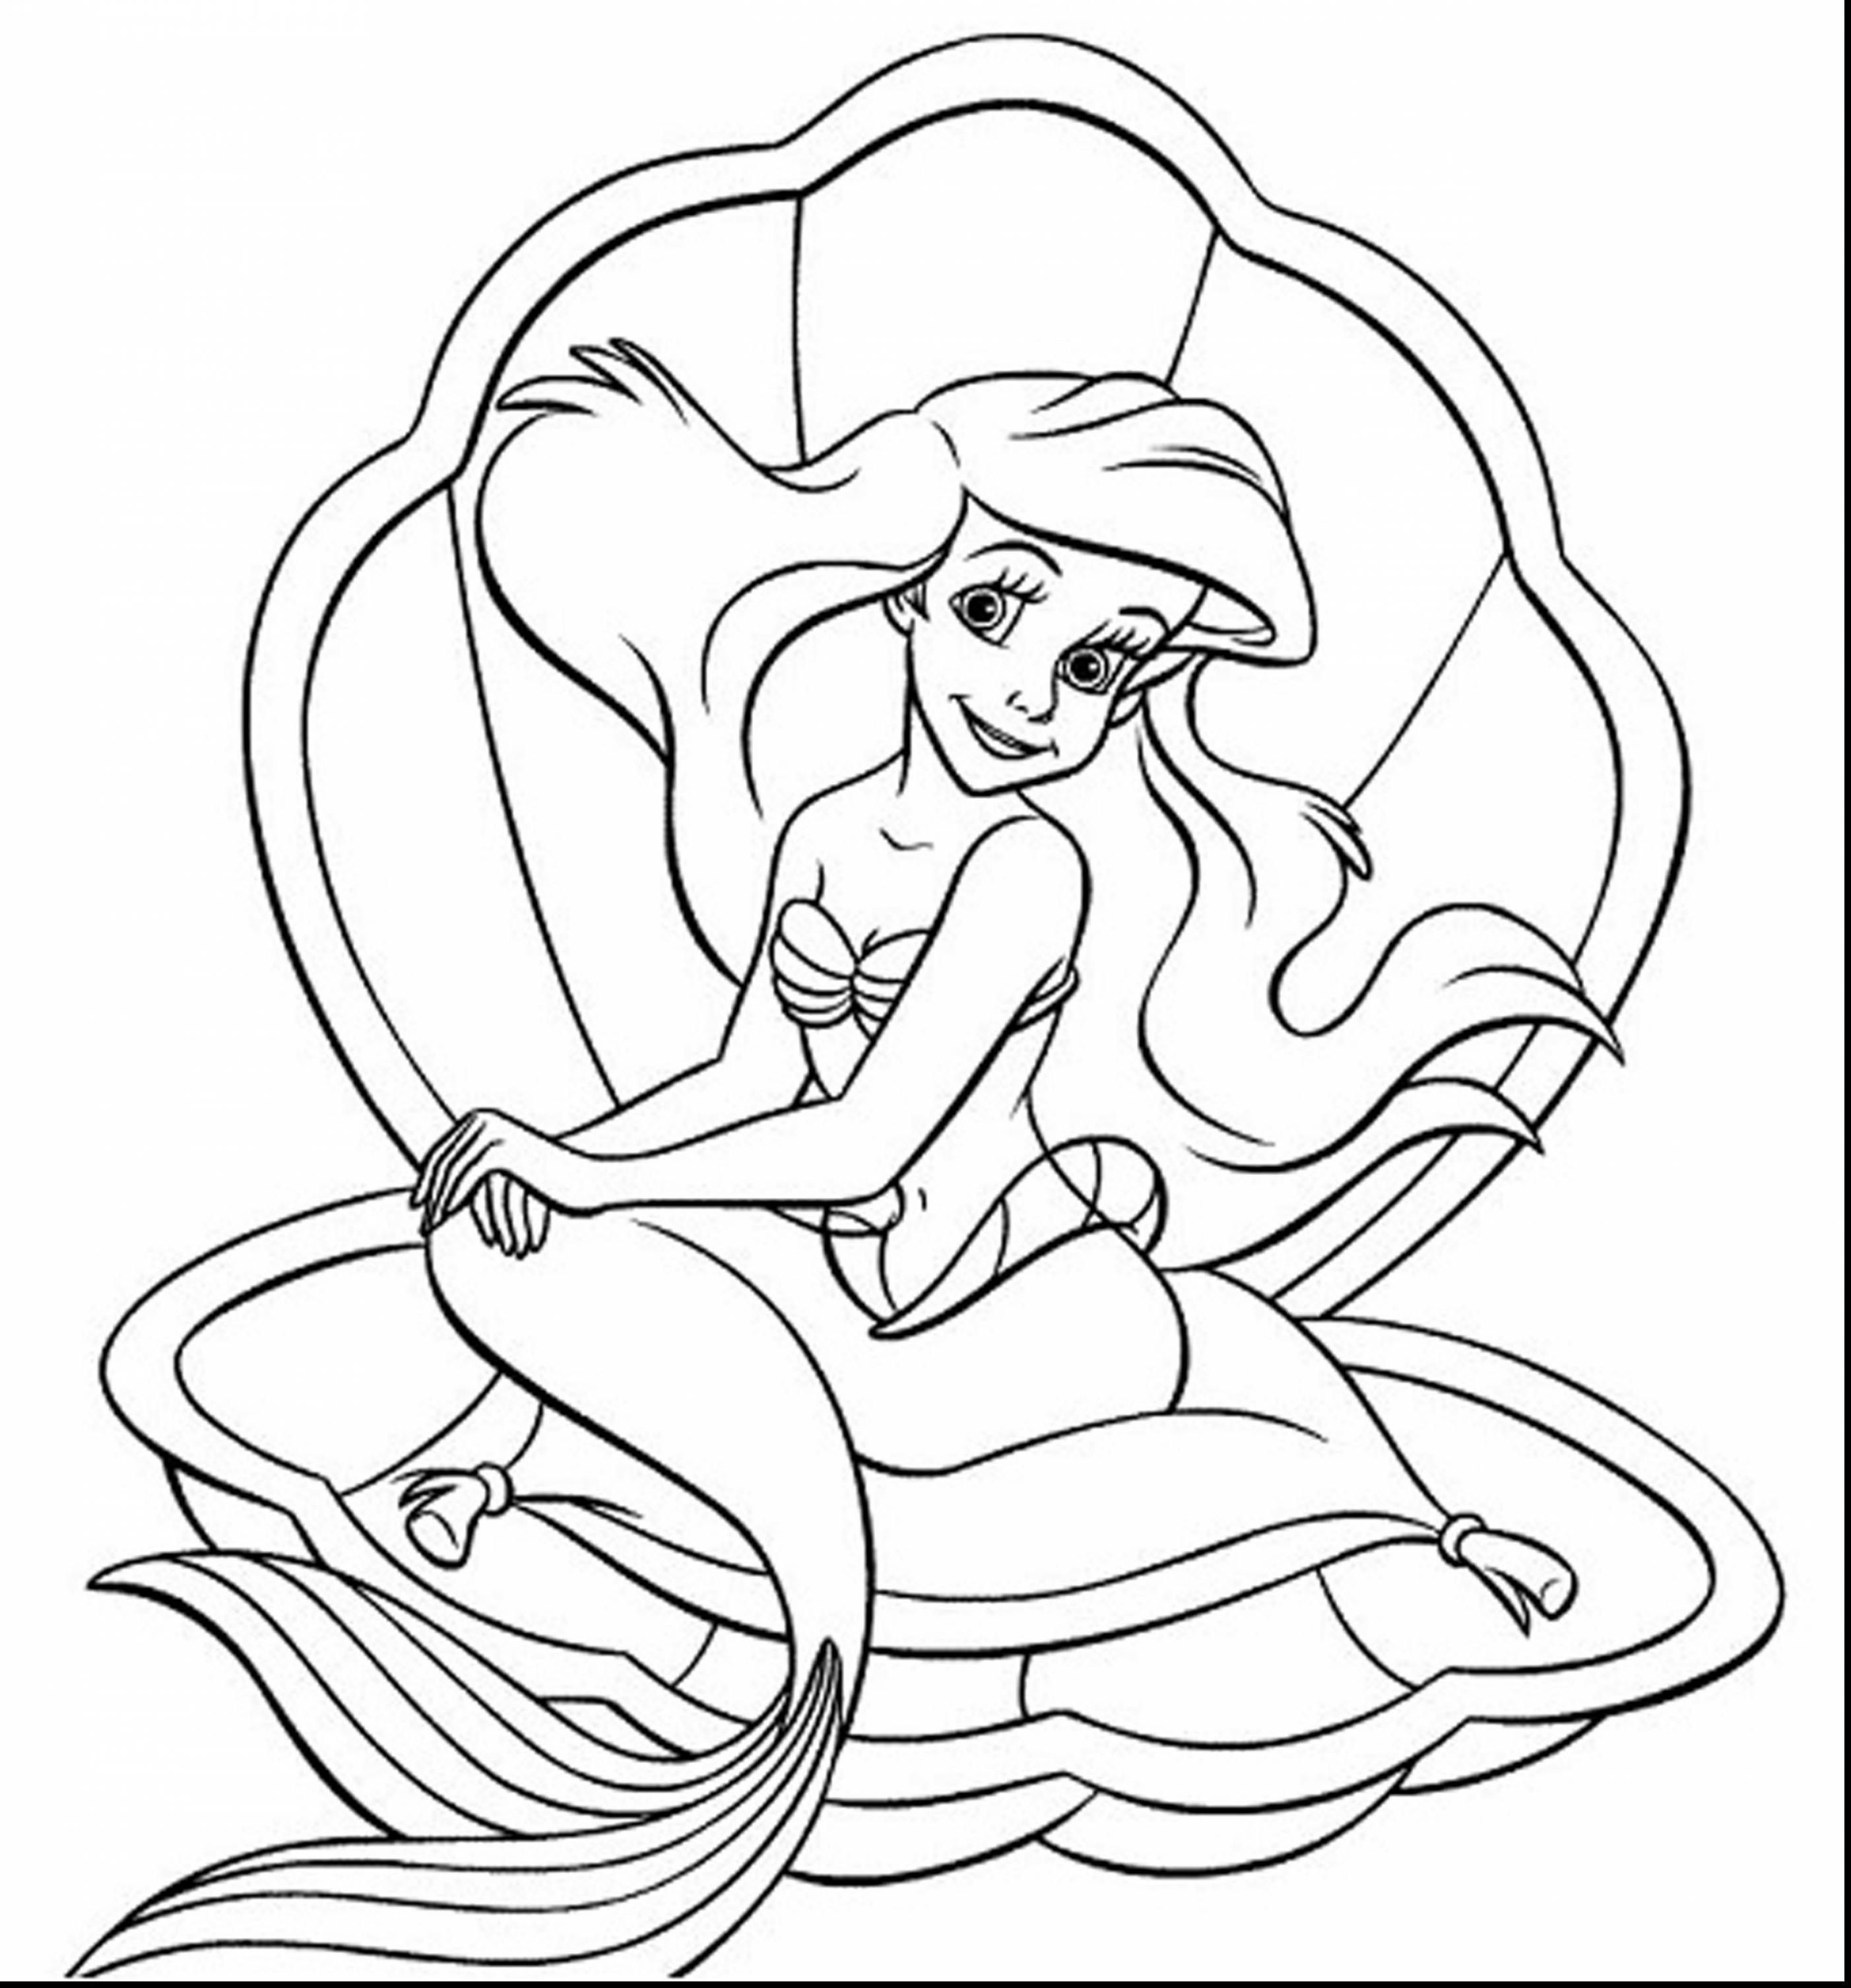 ariel colouring pages printable ariel coloring pages best coloring pages for kids pages colouring printable ariel